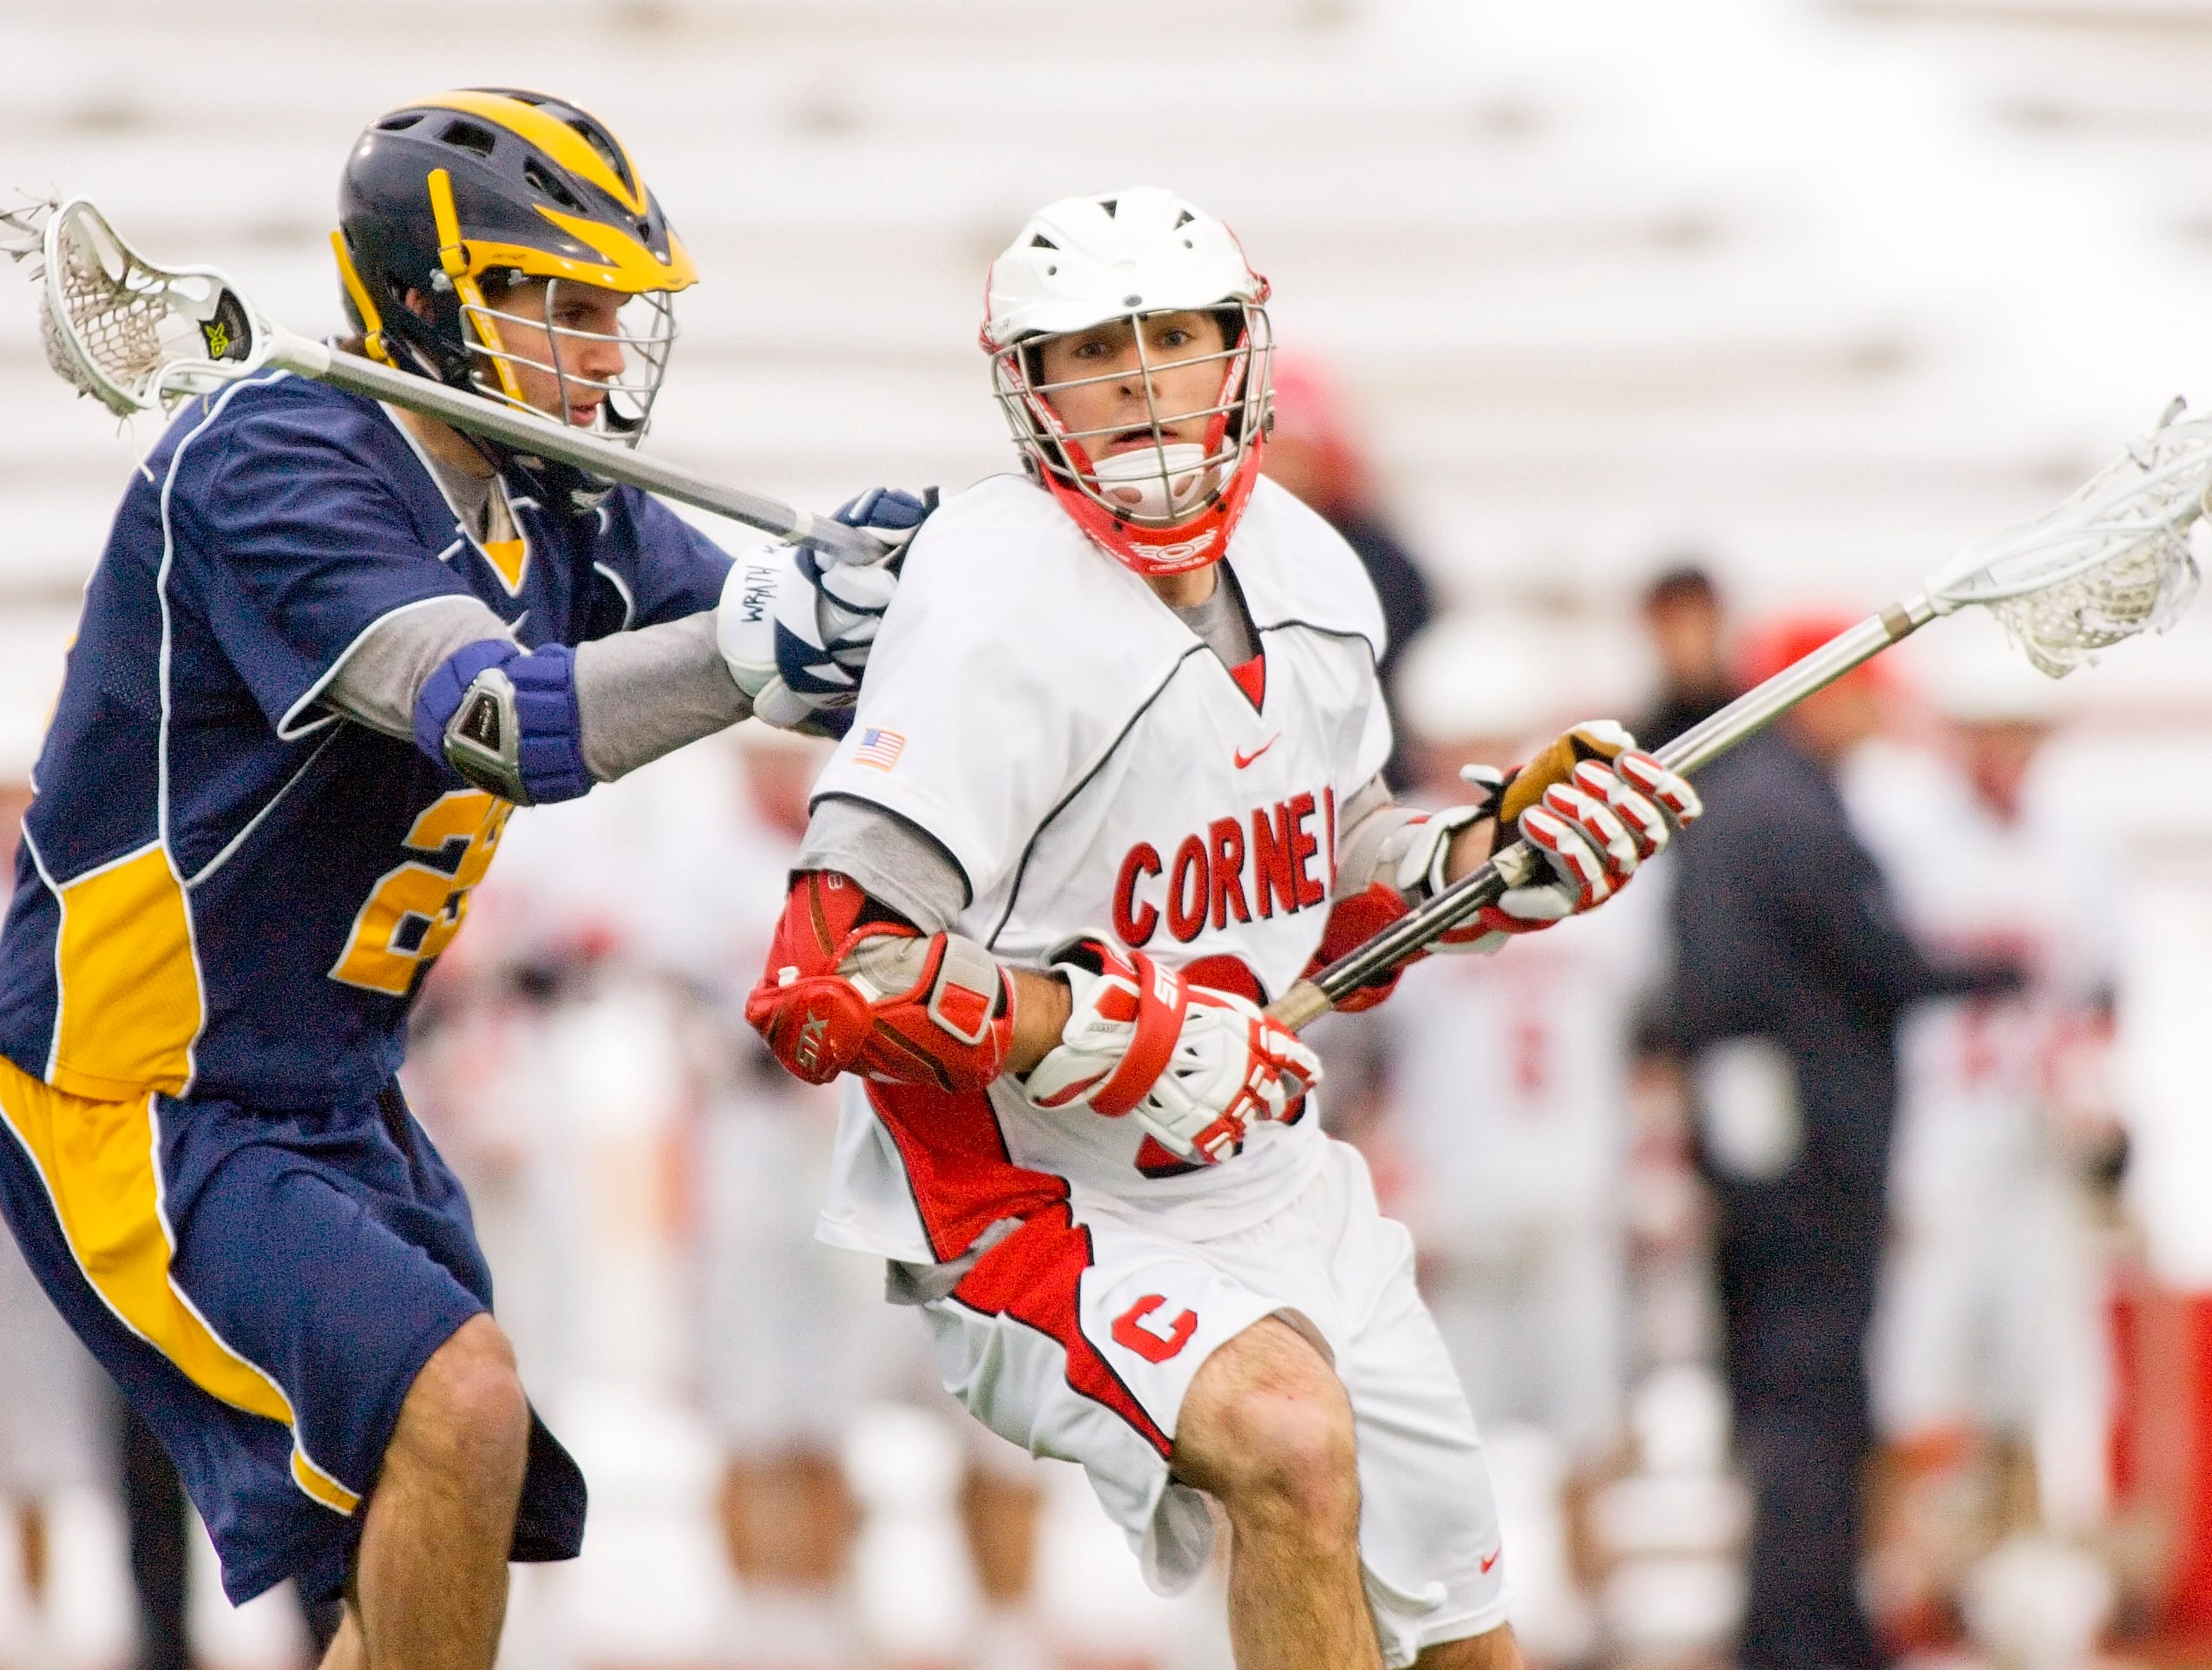 2011: Canisius' D.J. Giacobbo defends as Cornell's Scott Austin looks for a shot during the first half of their game Wednesday evening at Schoellkopf Stadium.